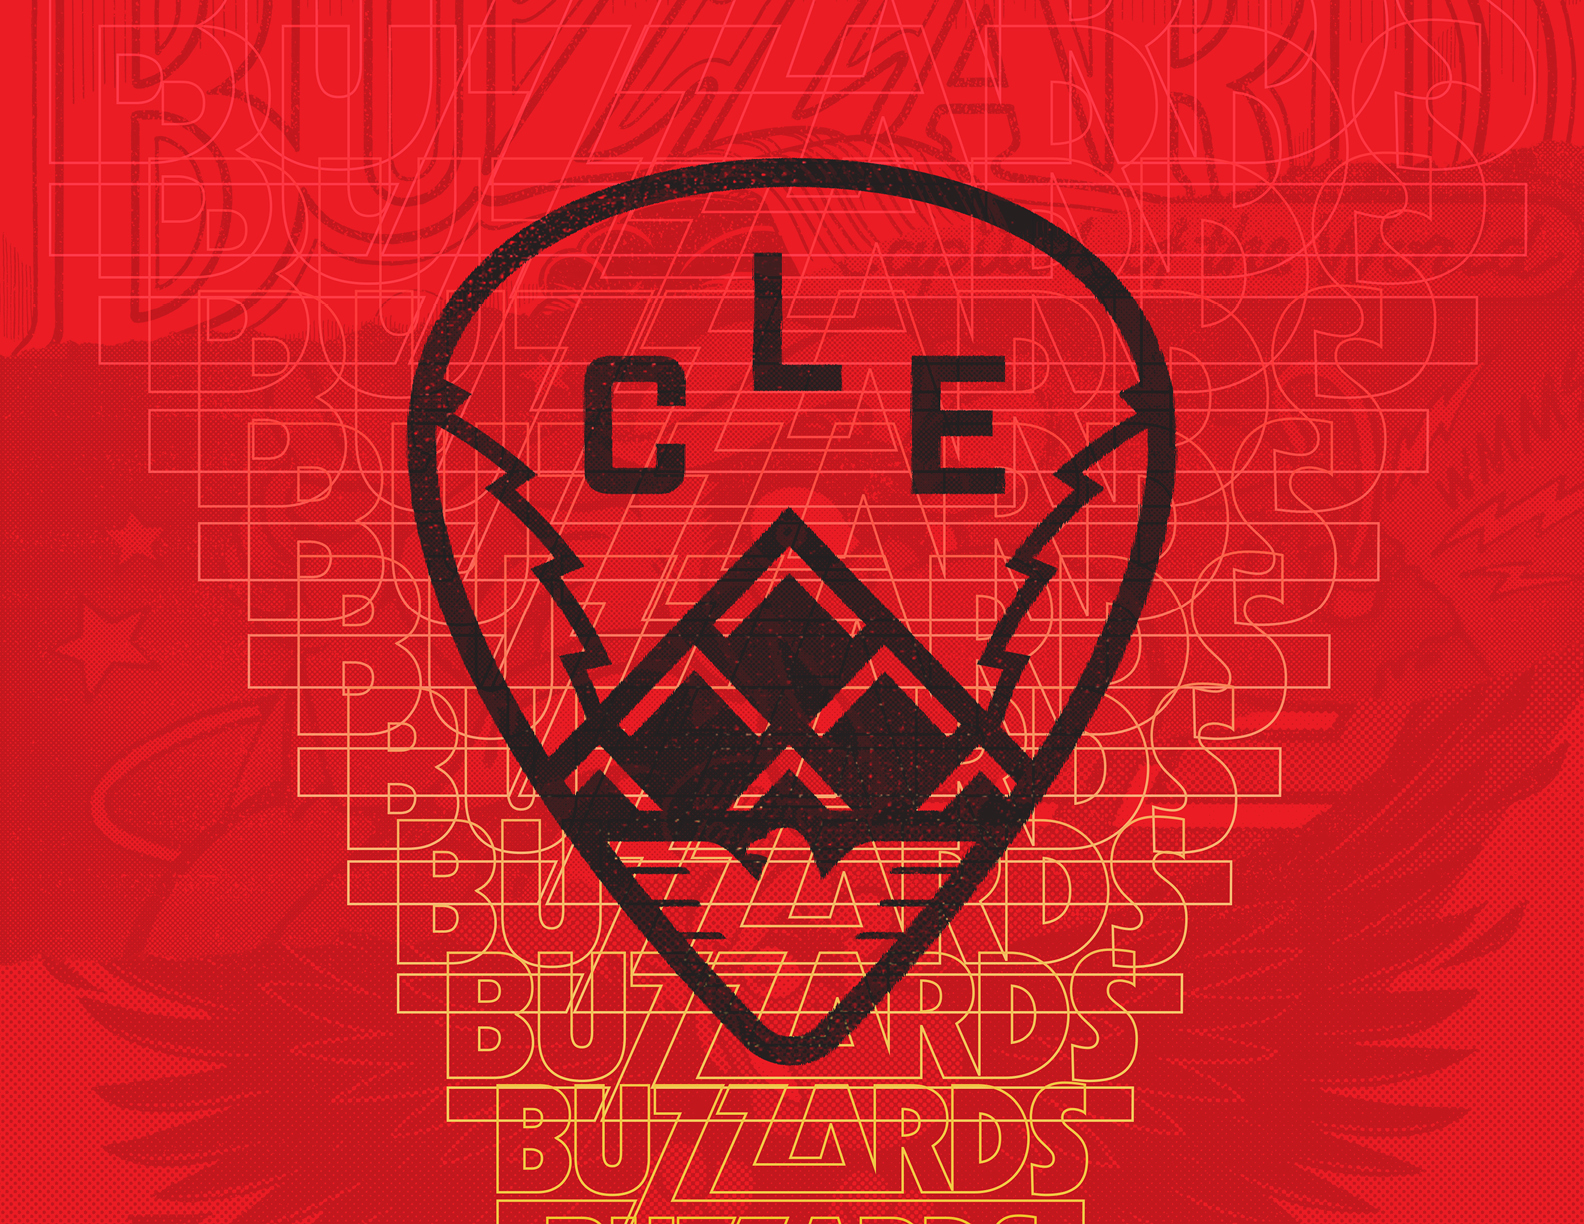 Cleveland Buzzards7.jpg